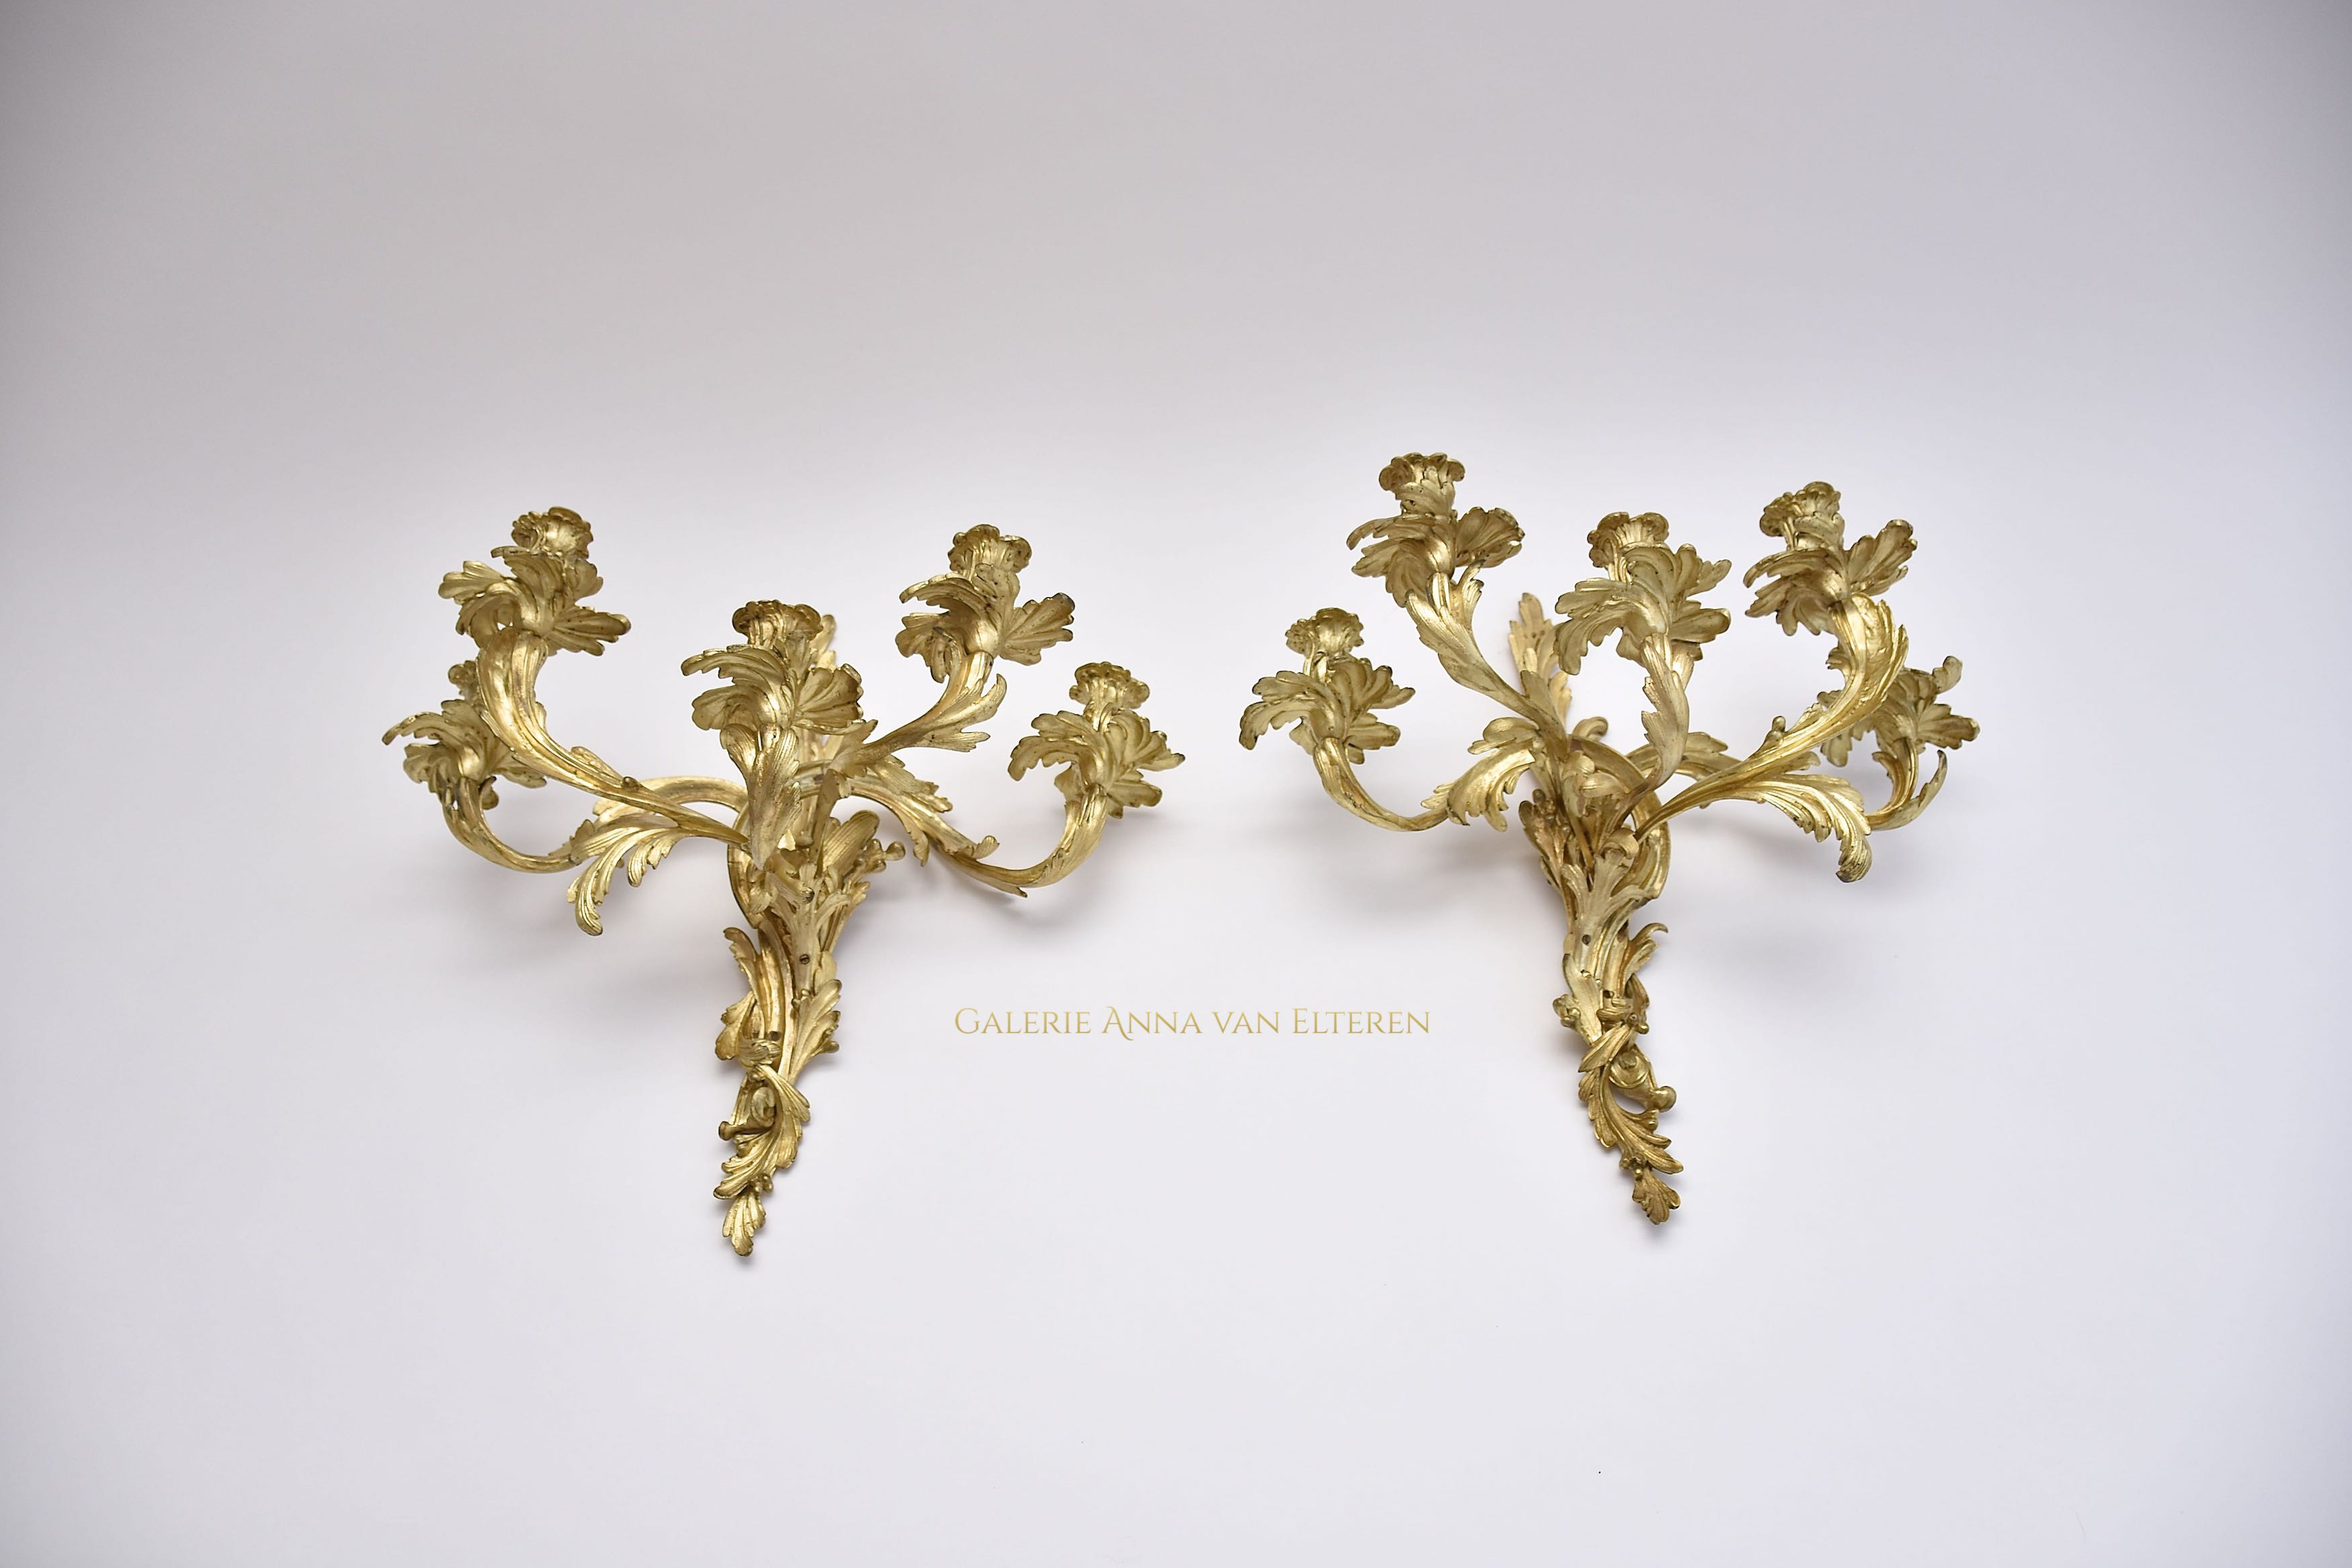 A pair of large gilt bronze wall appliques in the style of Louis XV